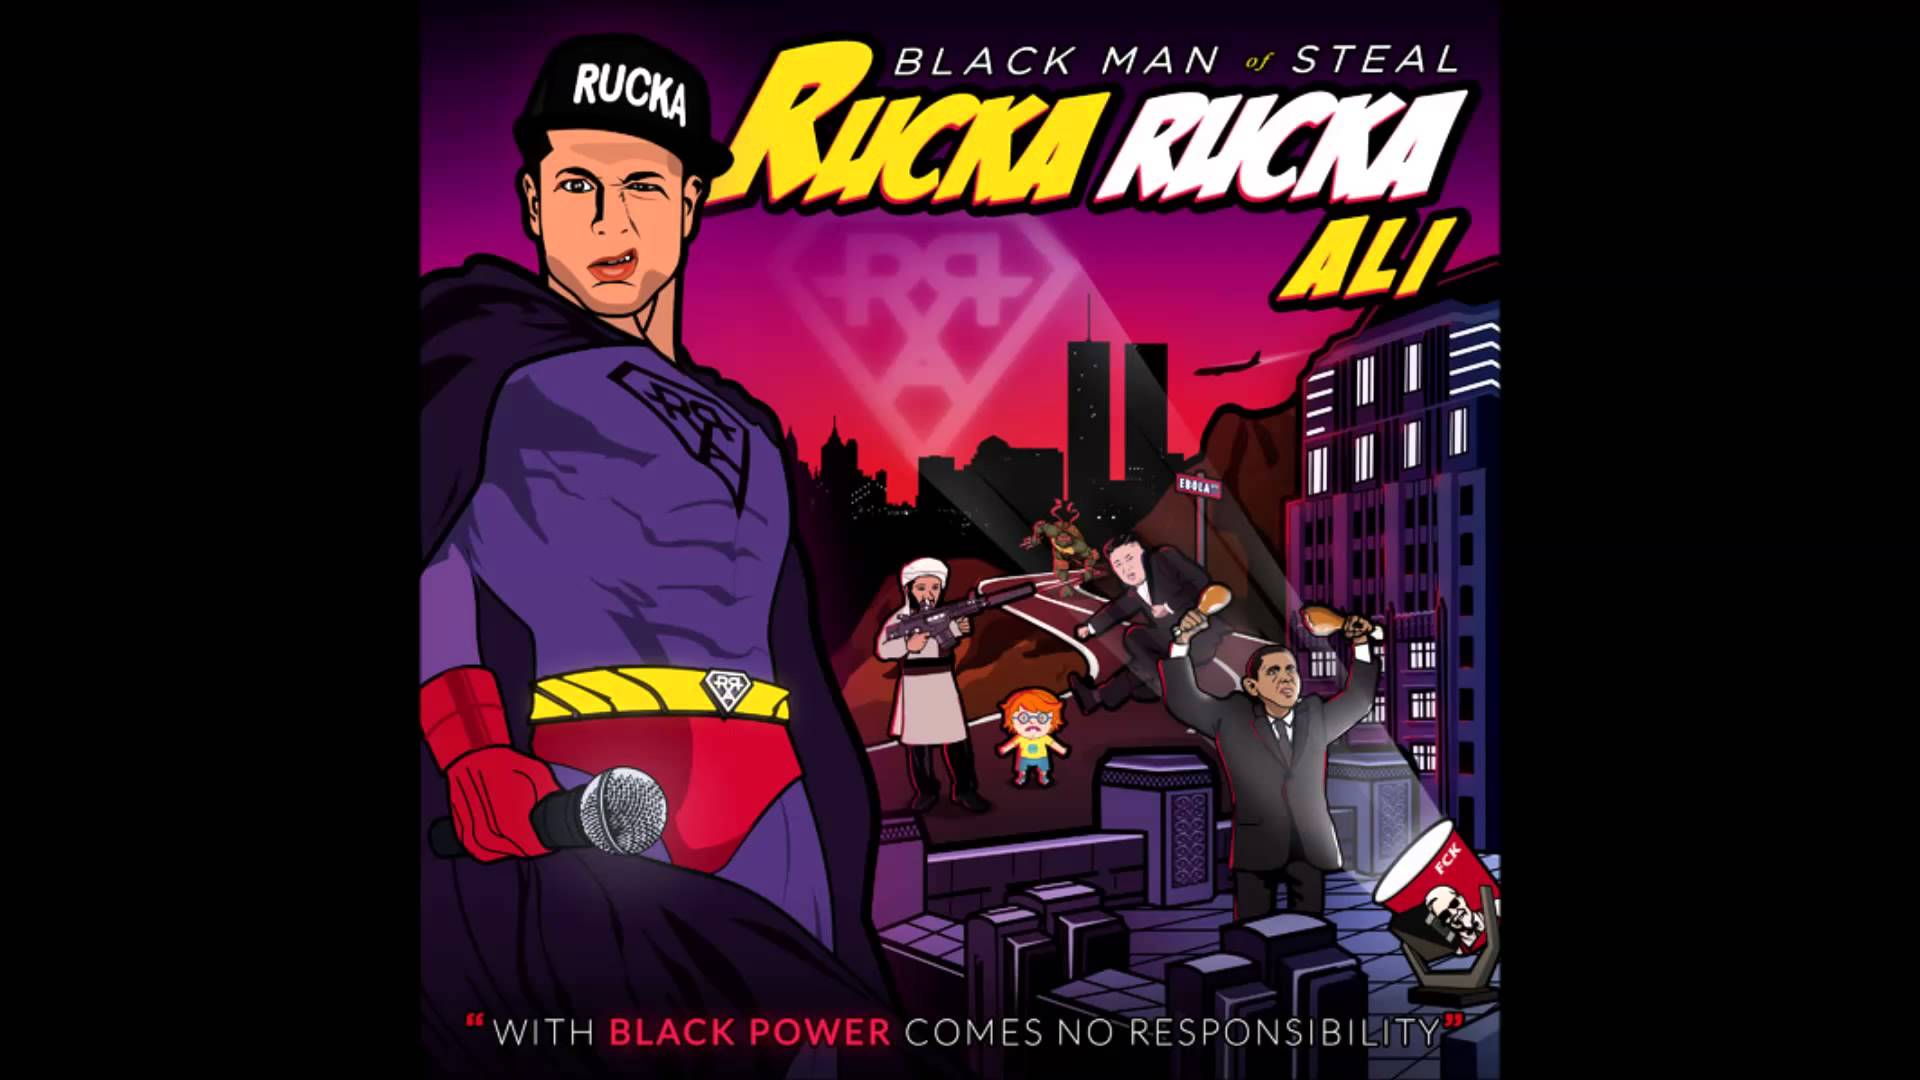 New Podcast - Ep 7 Comedian Rucka Rucka Ali on YouTube, Comedy and Objectivism